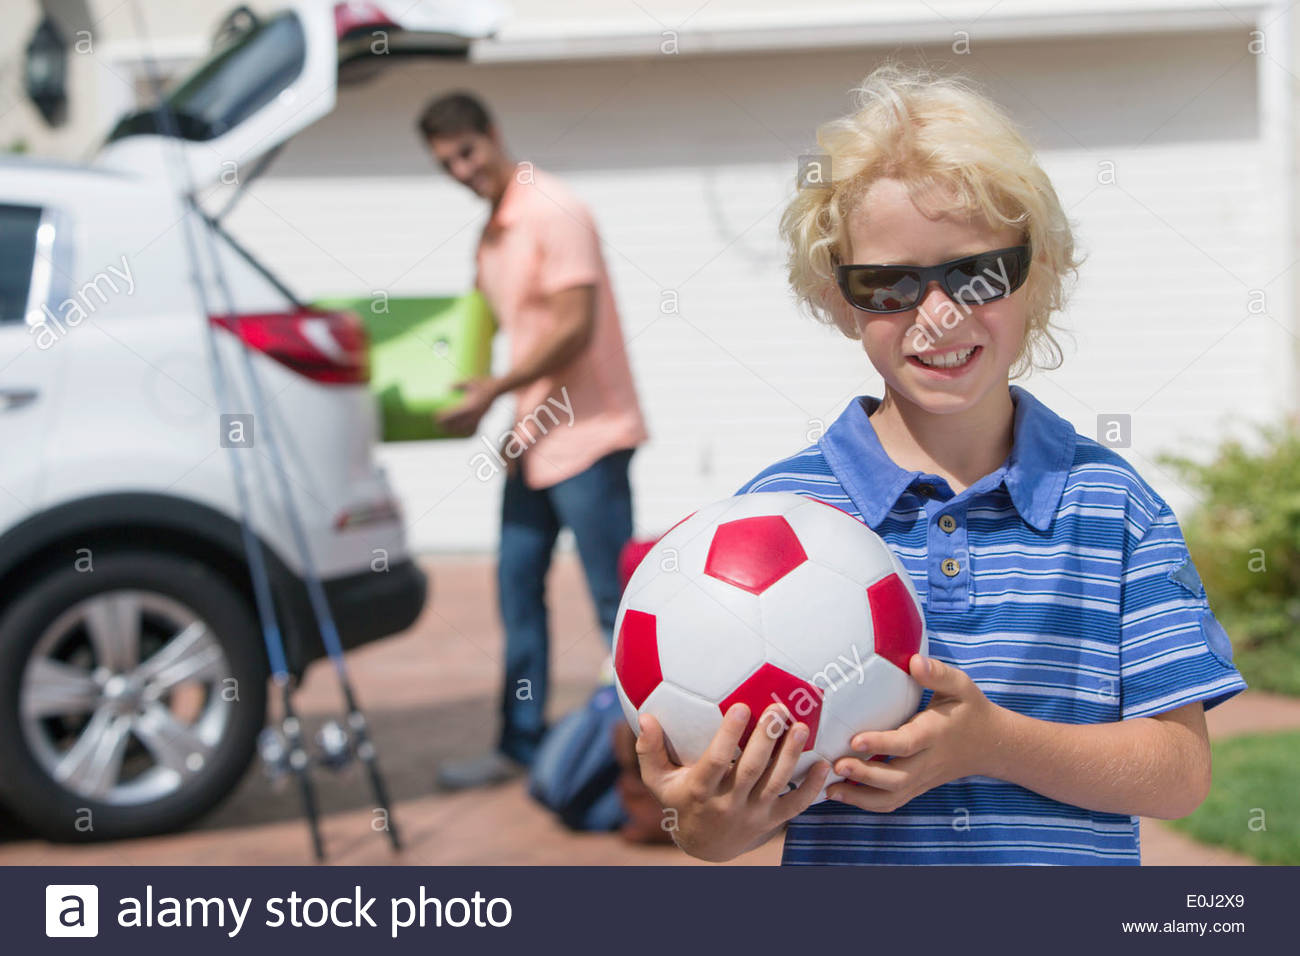 Portrait of smiling boy holding soccer ball in sunny driveway - Stock Image